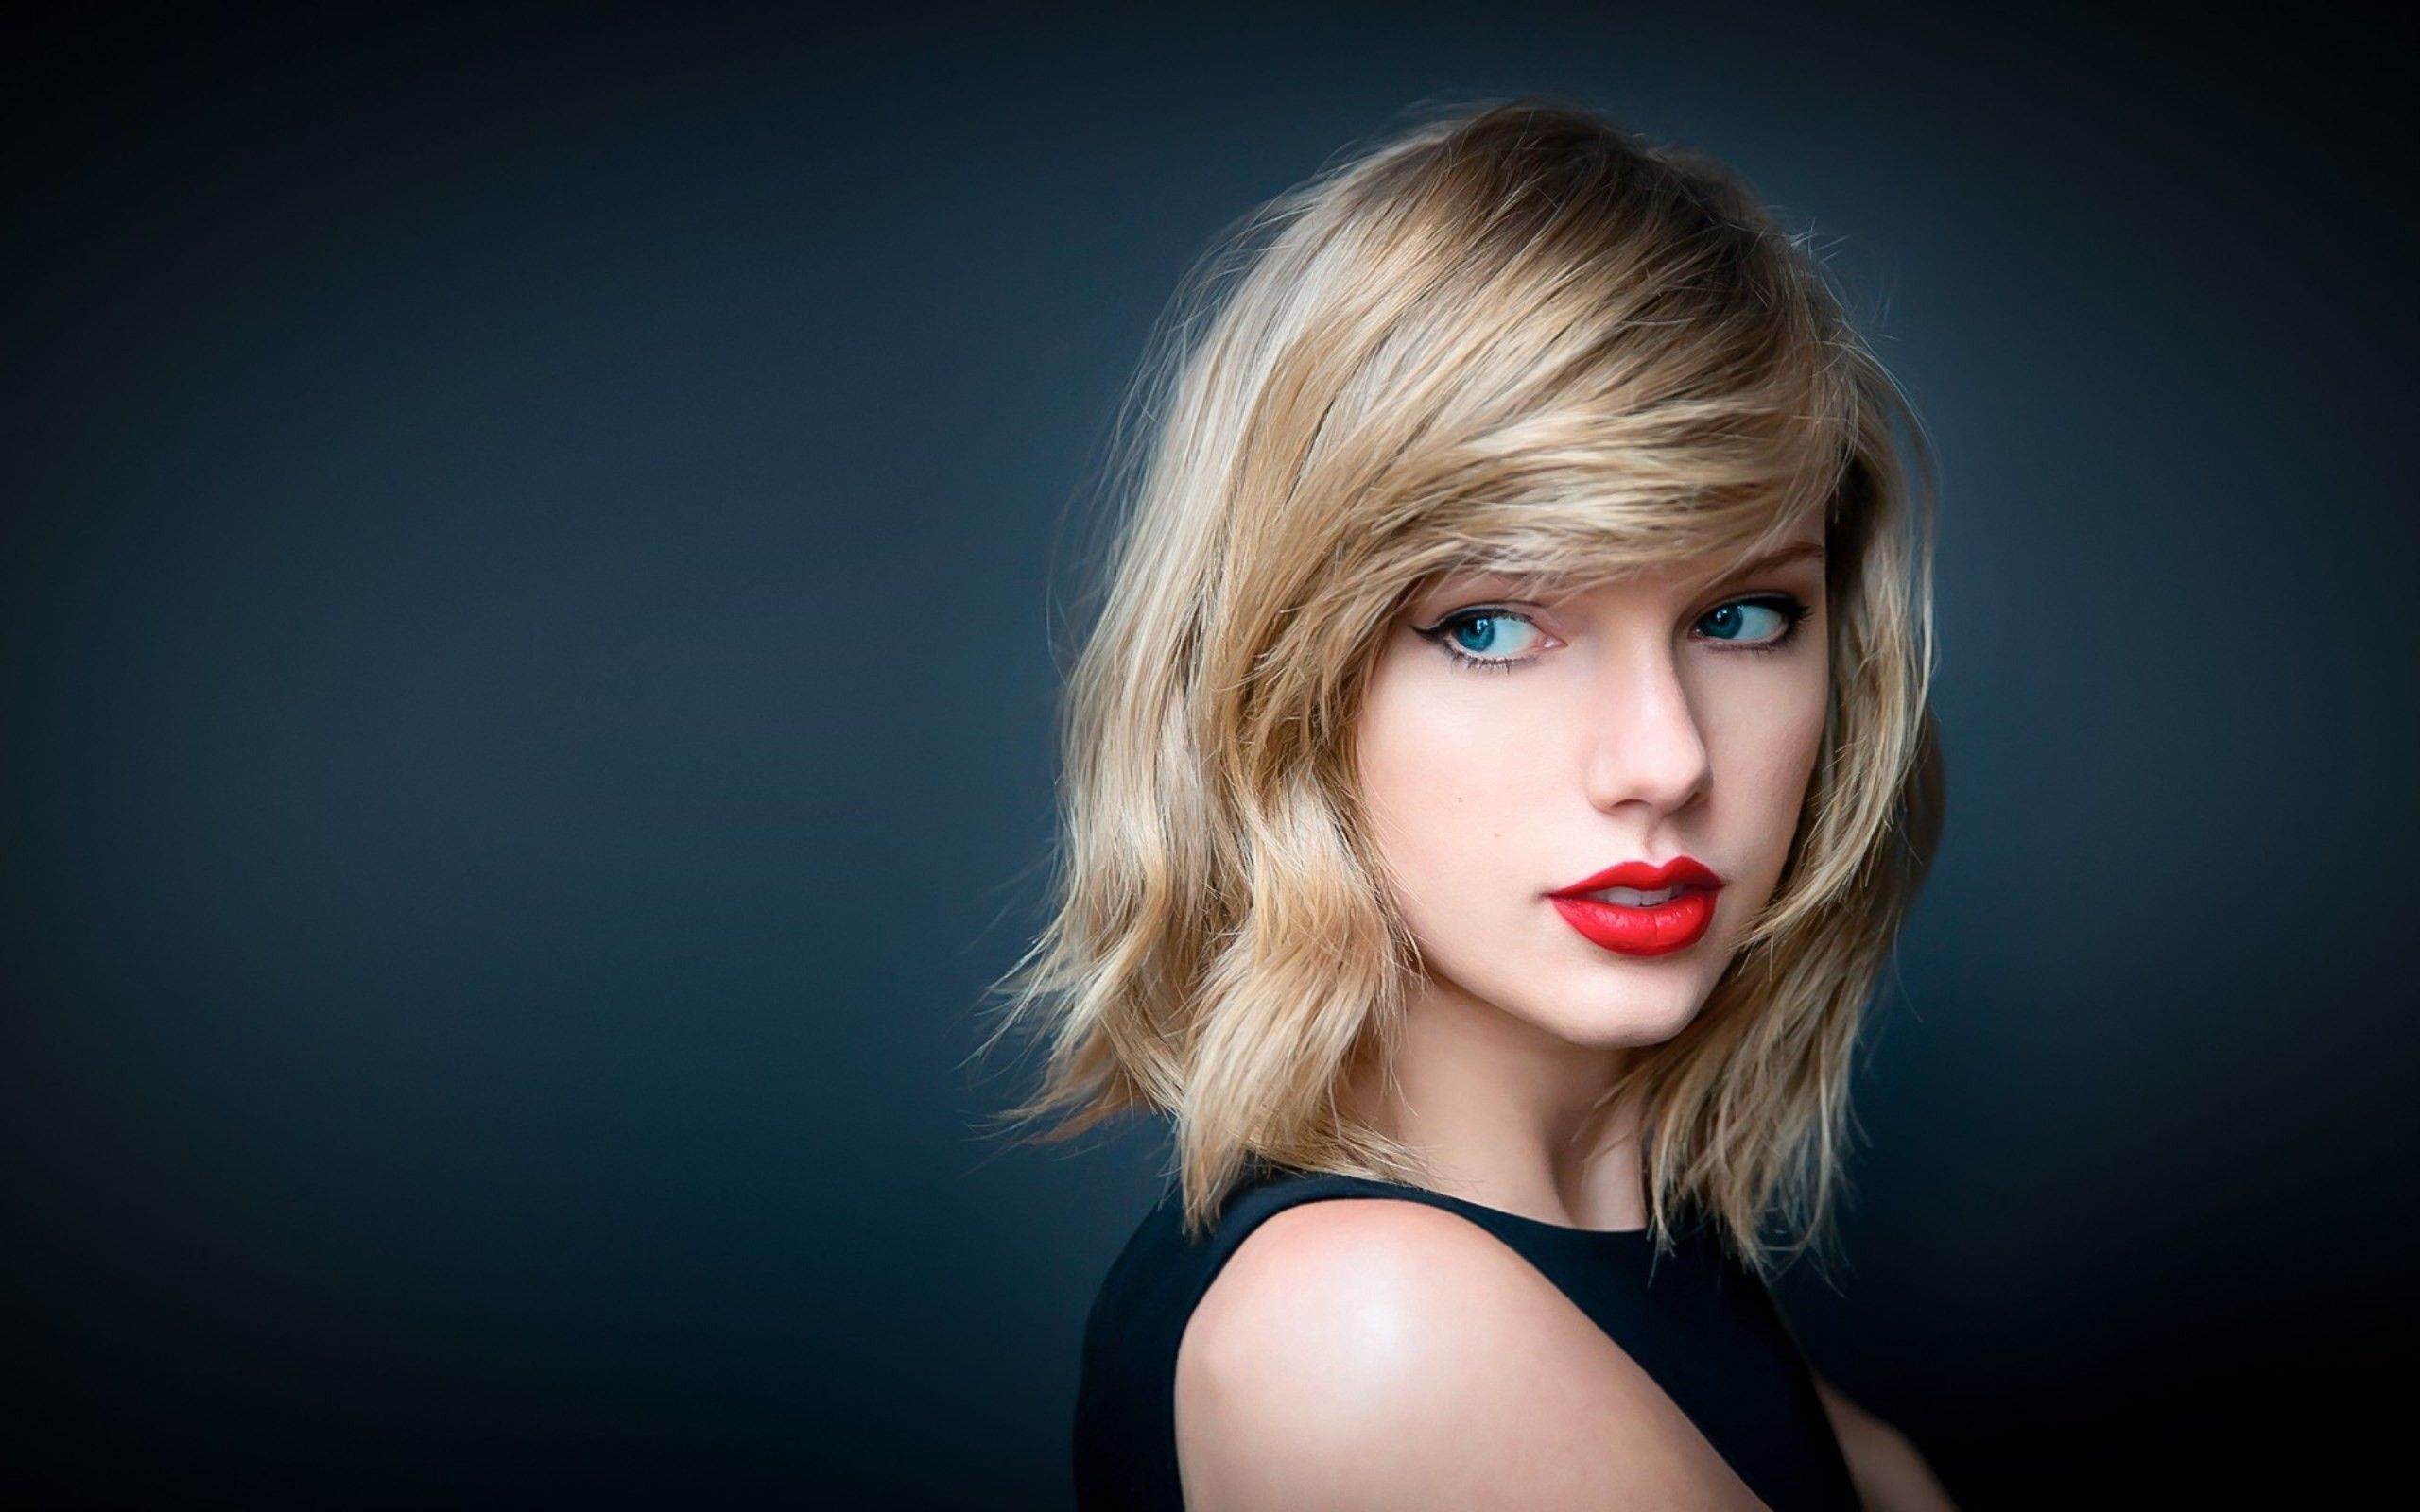 Taylor Swift Hd 2018 Wallpapers 70 Images Taylor Swift Wallpaper Taylor Swift Hair Taylor Swift Hot